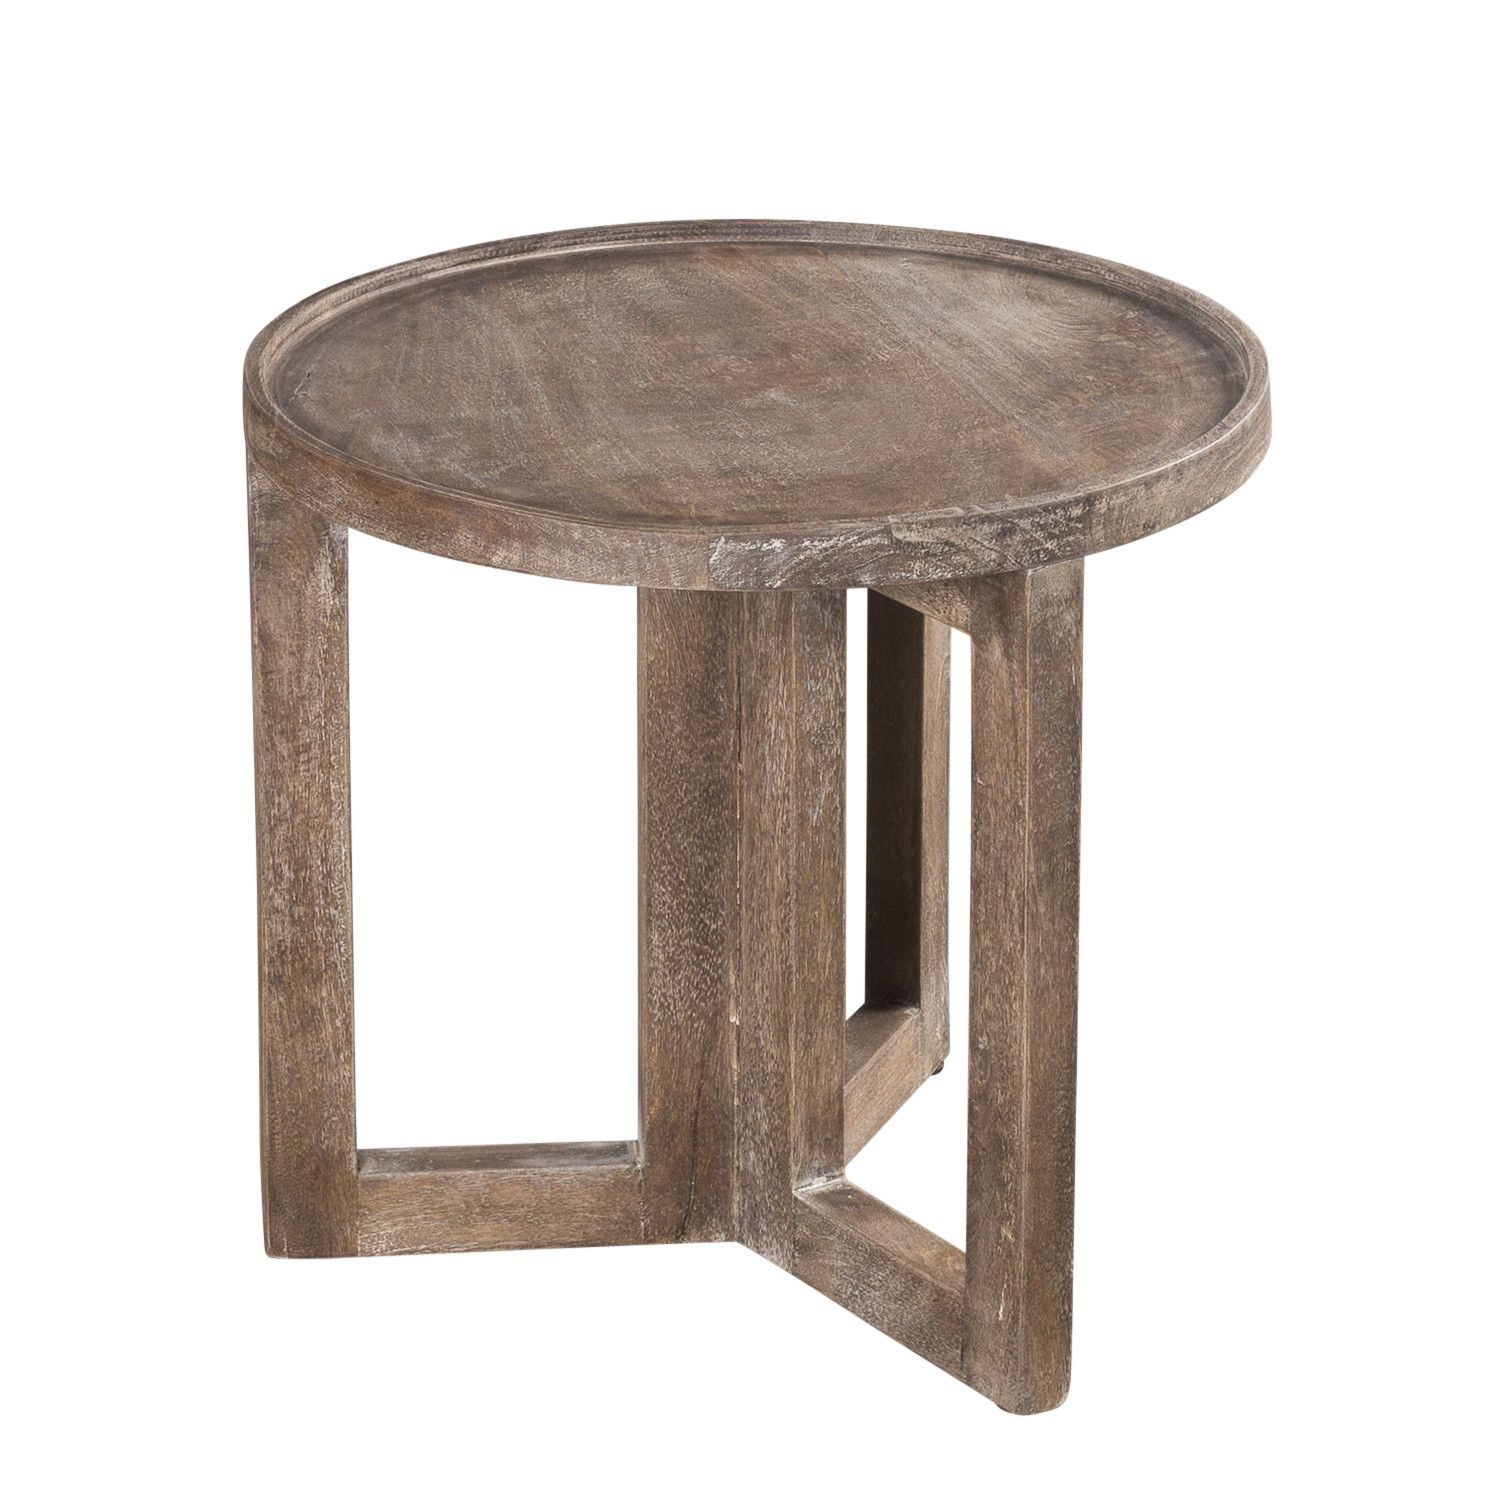 customer zoomed vanessa living modern small low accent table wildon home distressed round side potting granite top end tables farm chairs inch tablecloth cotton ikea garden shed